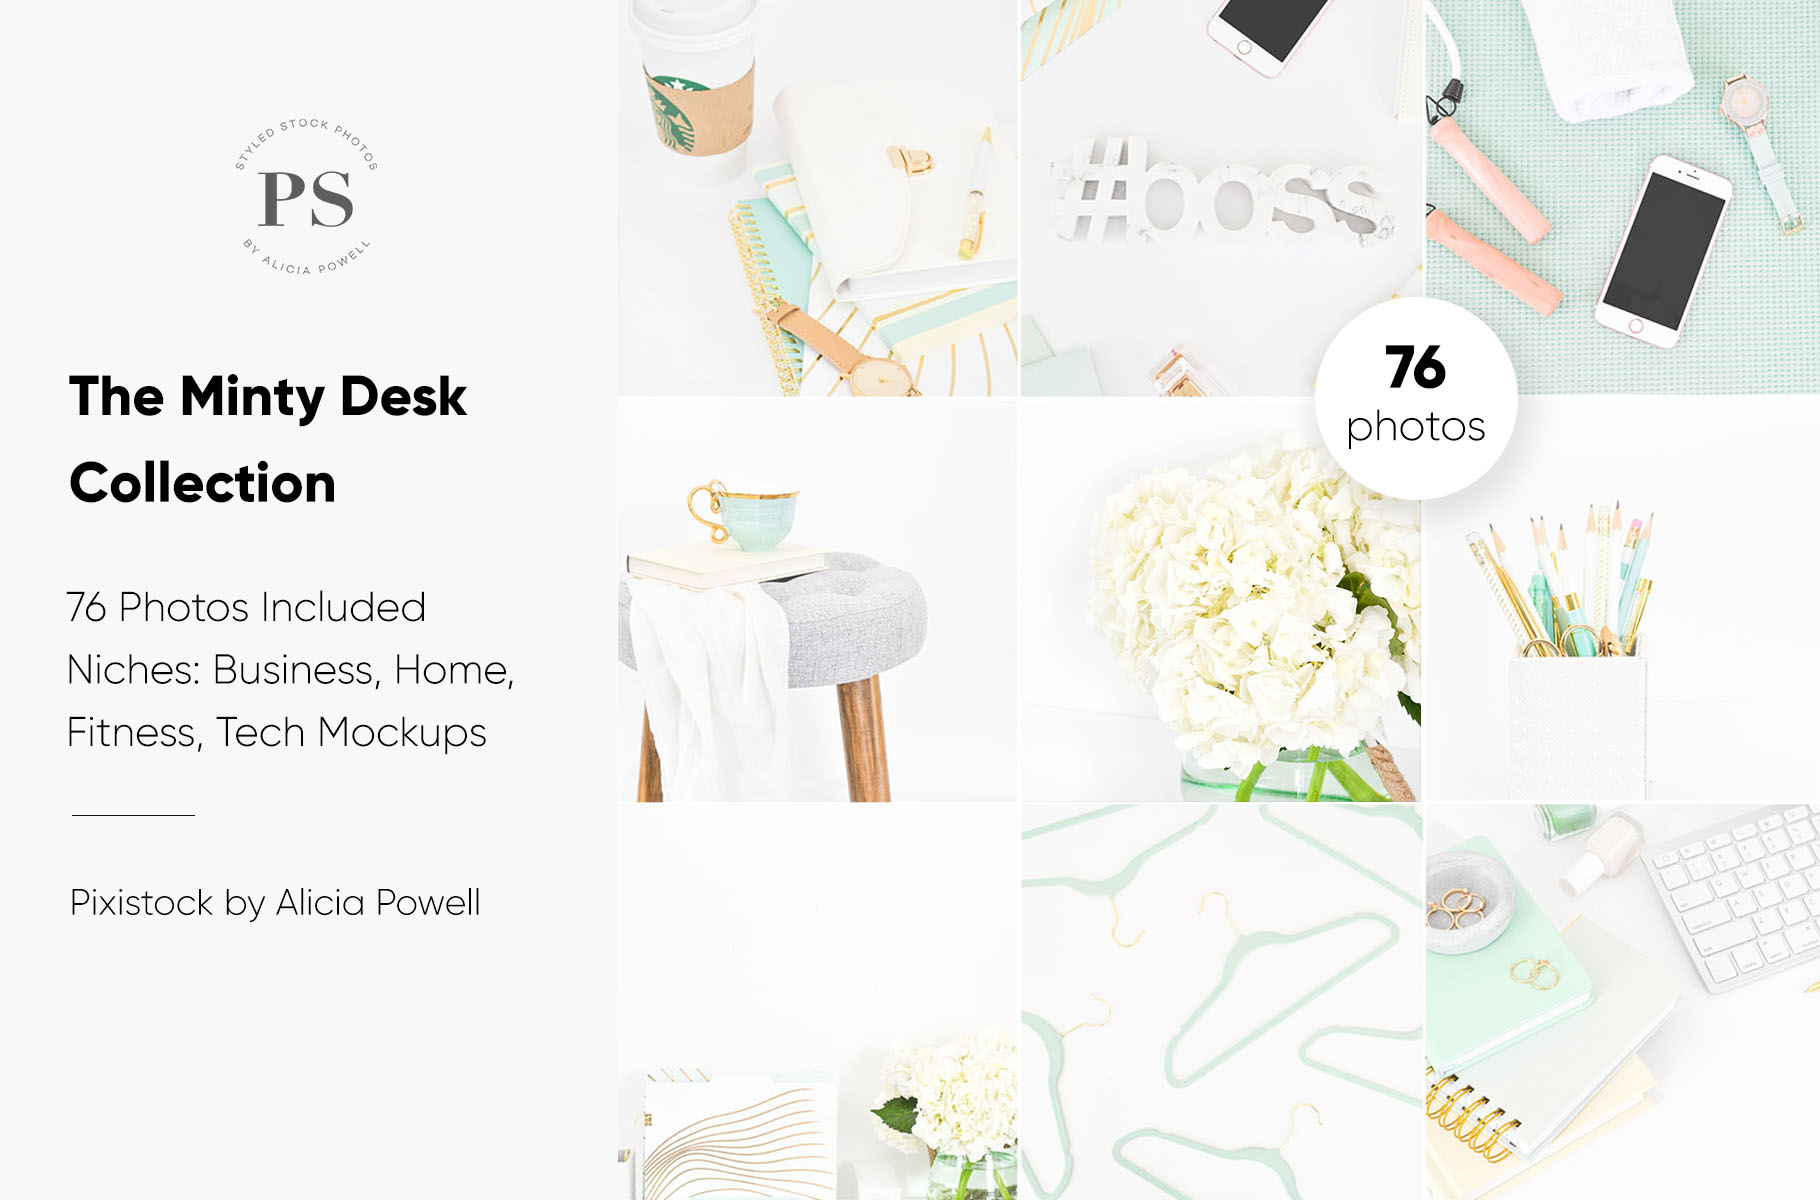 Minty Desktop Stock Photo Collection